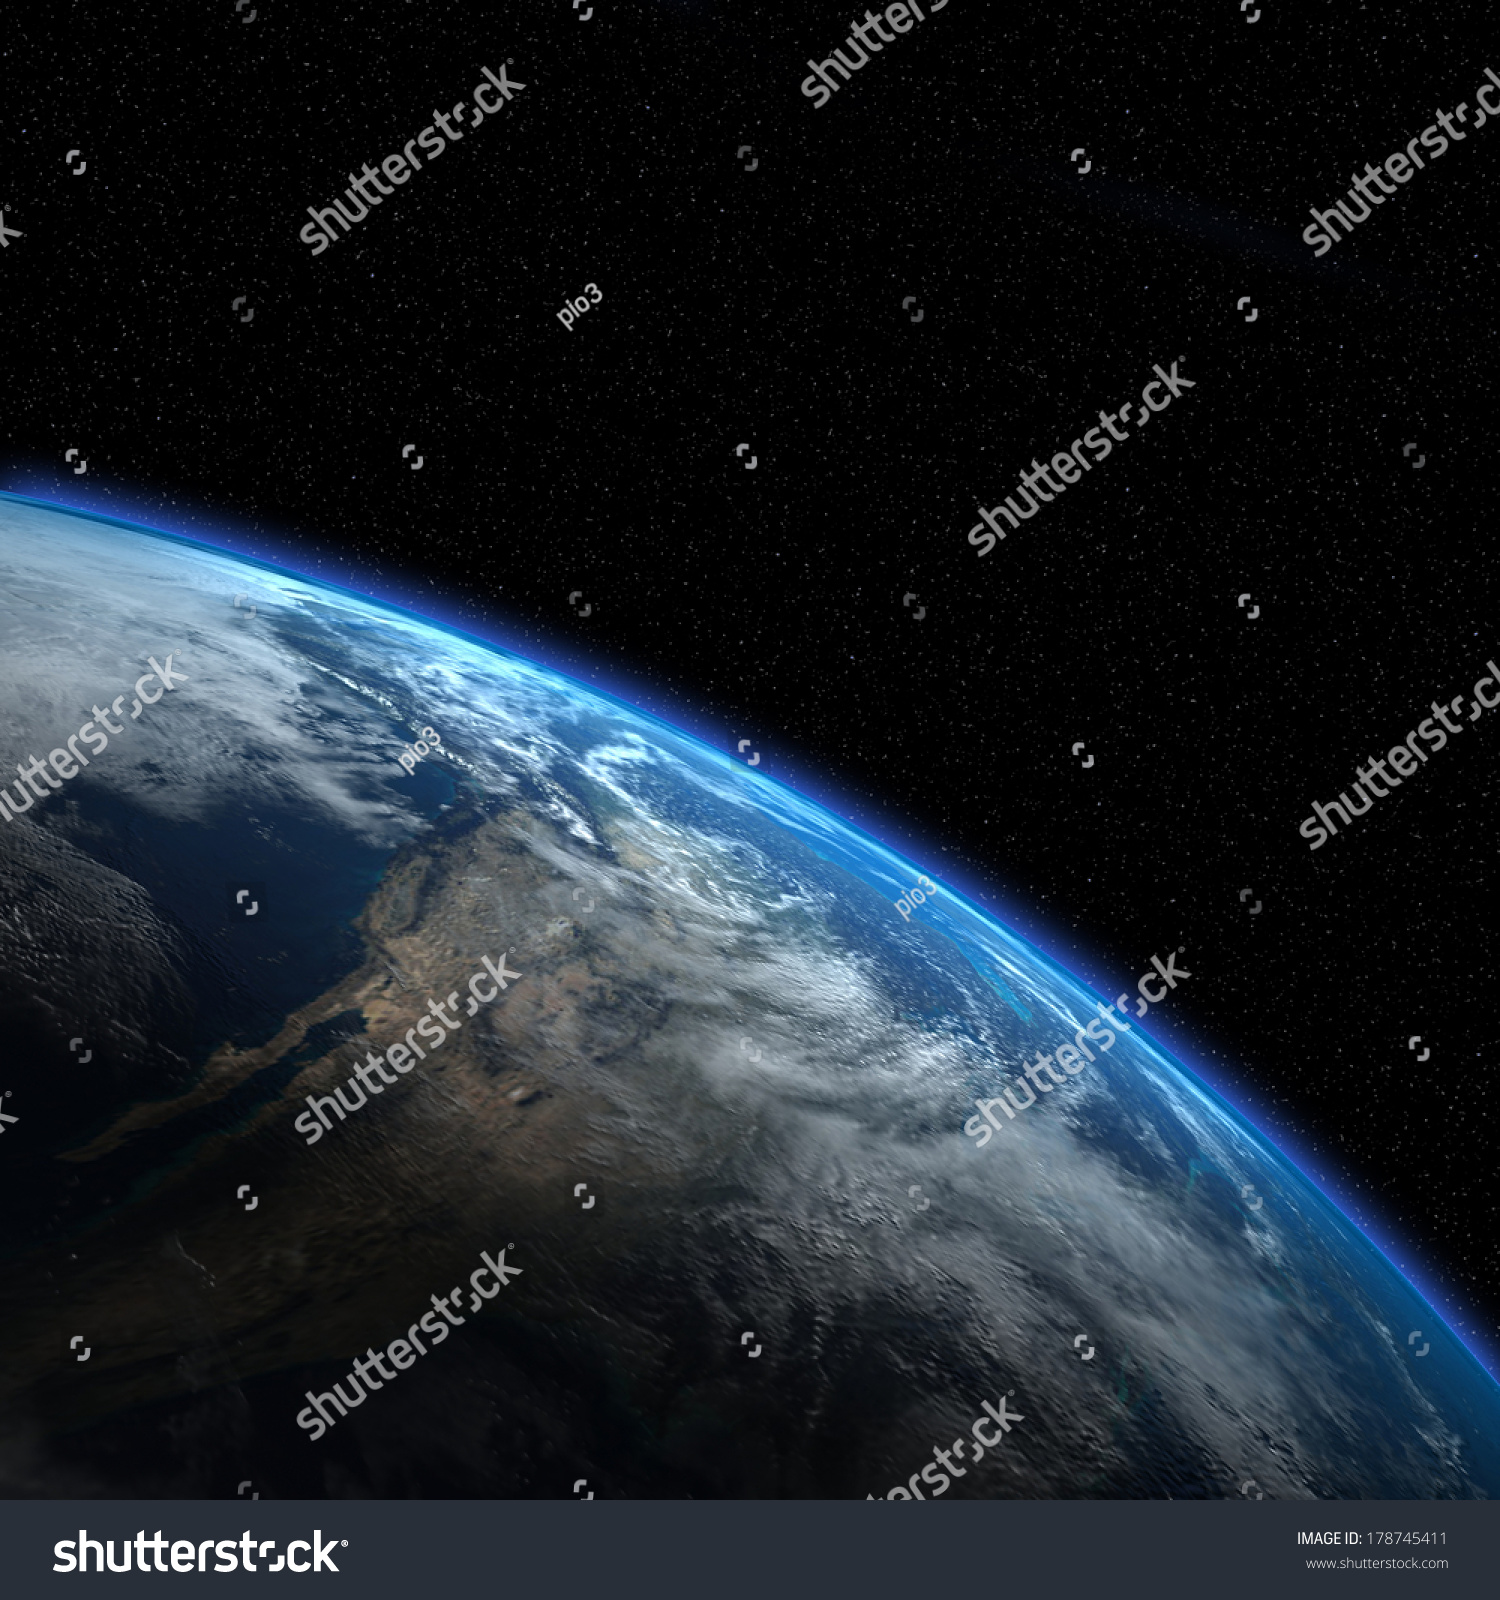 Earth view from outer space elements of this image for Outer space elements